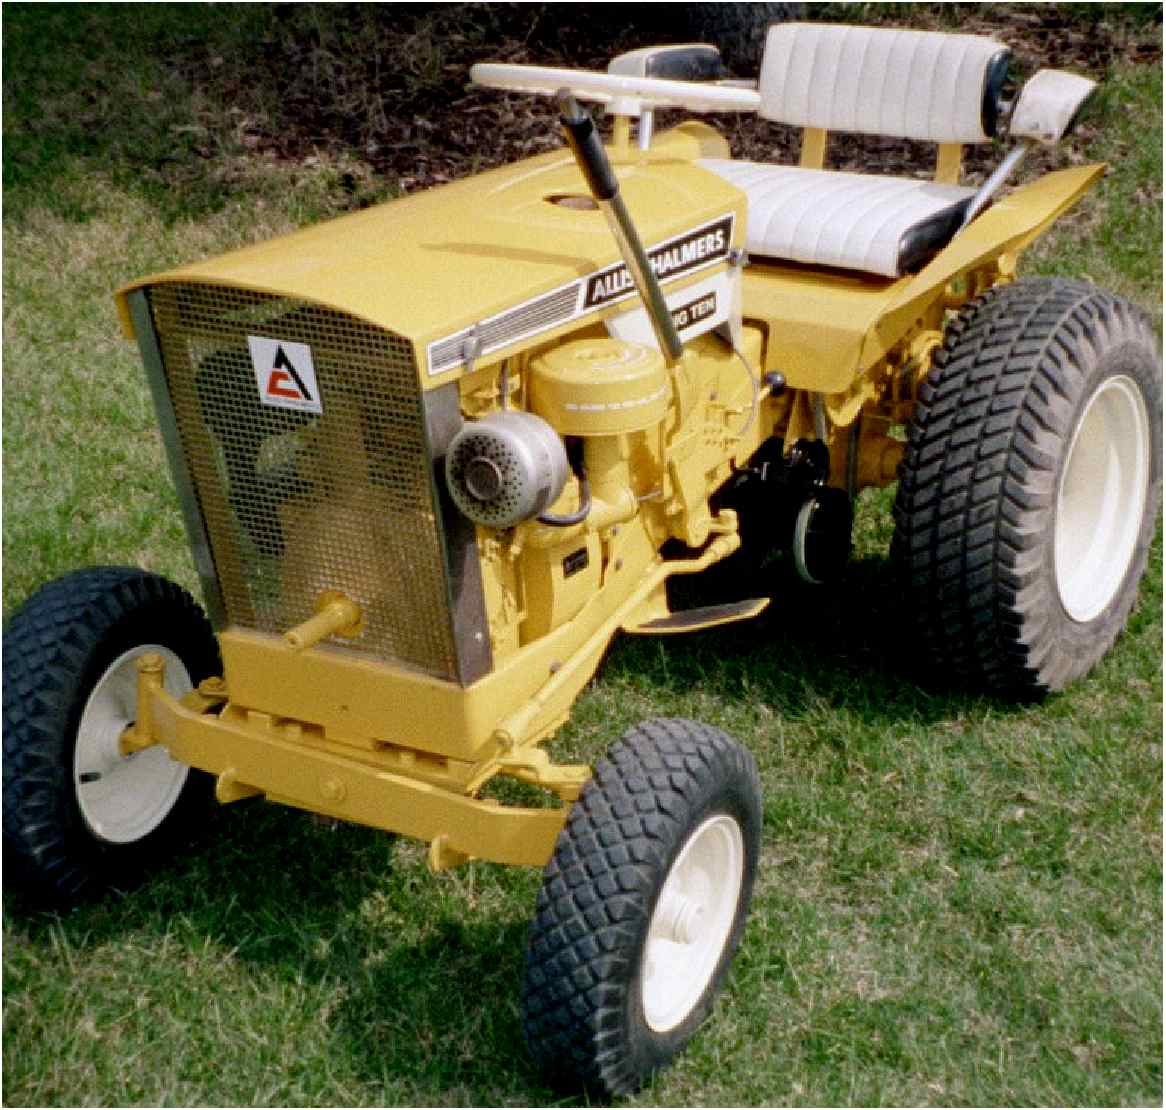 Allis Chalmers Garden Tractors : Lee j sackett completed projects